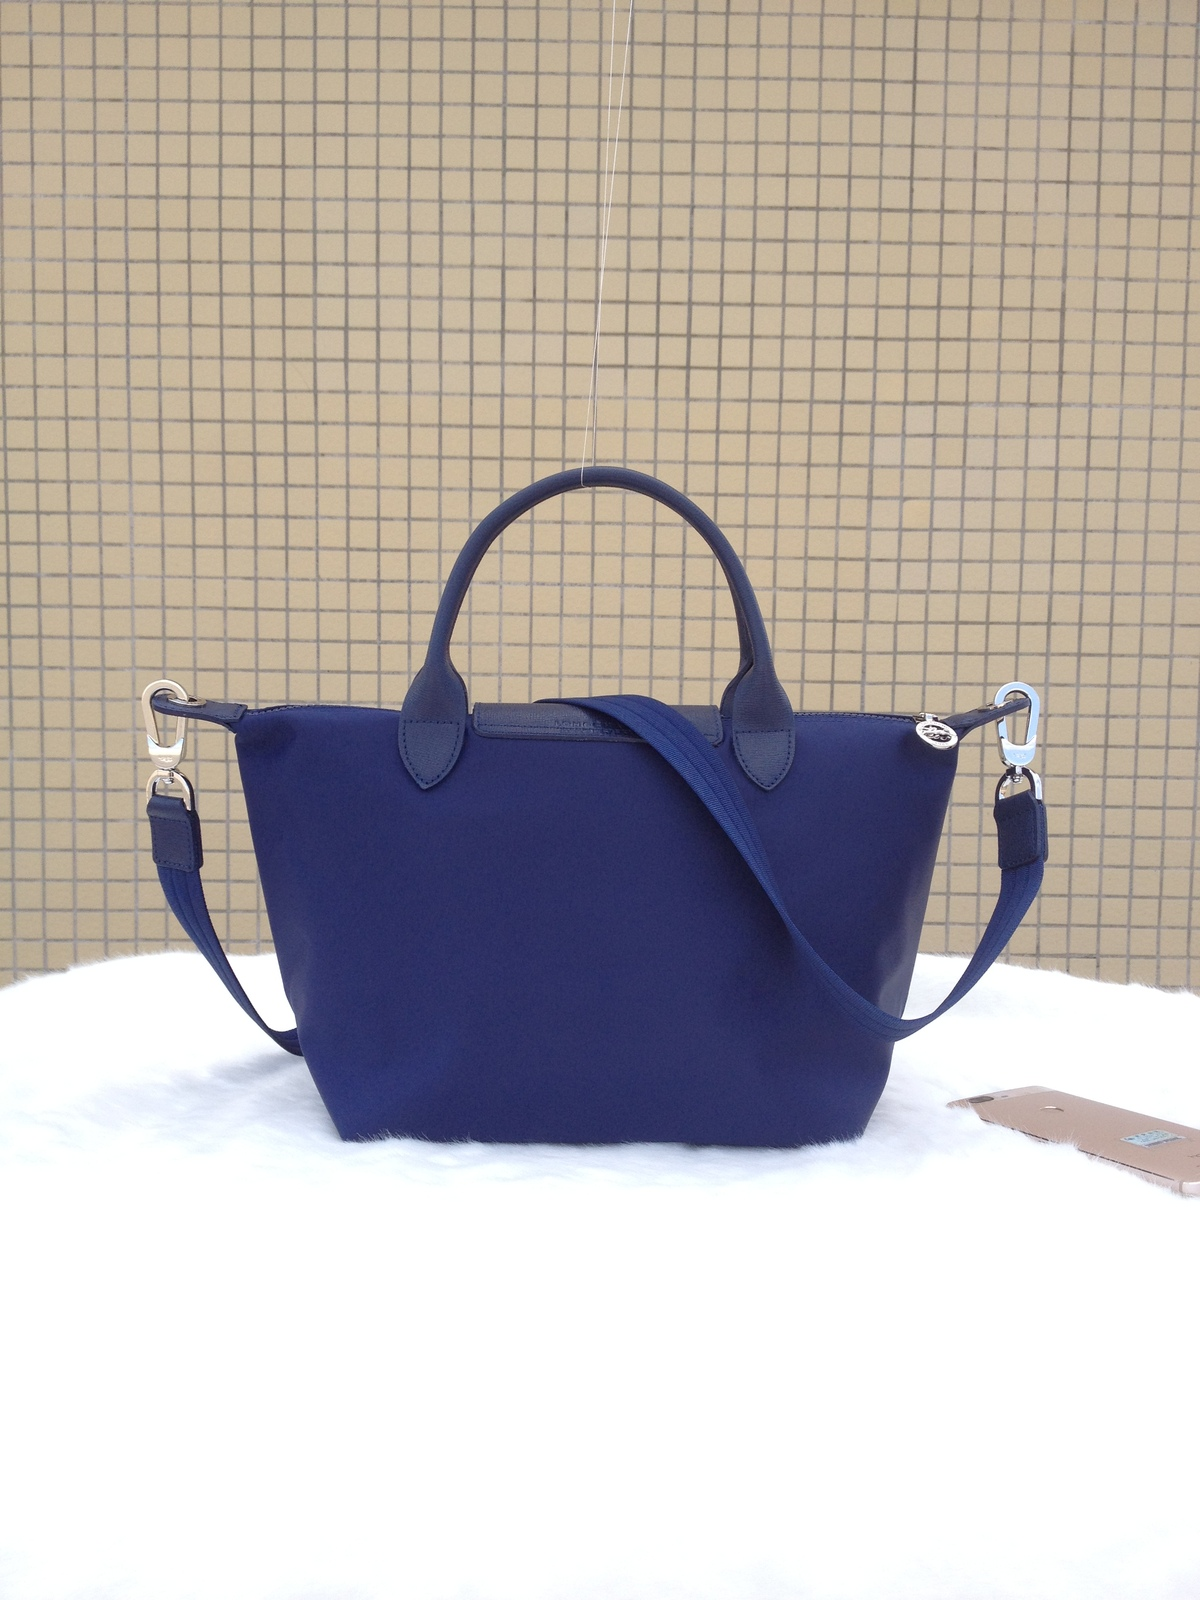 Longchamp Le Pliage Medium Navy Blue Handbag Neo Shoulder Strap 1512578556